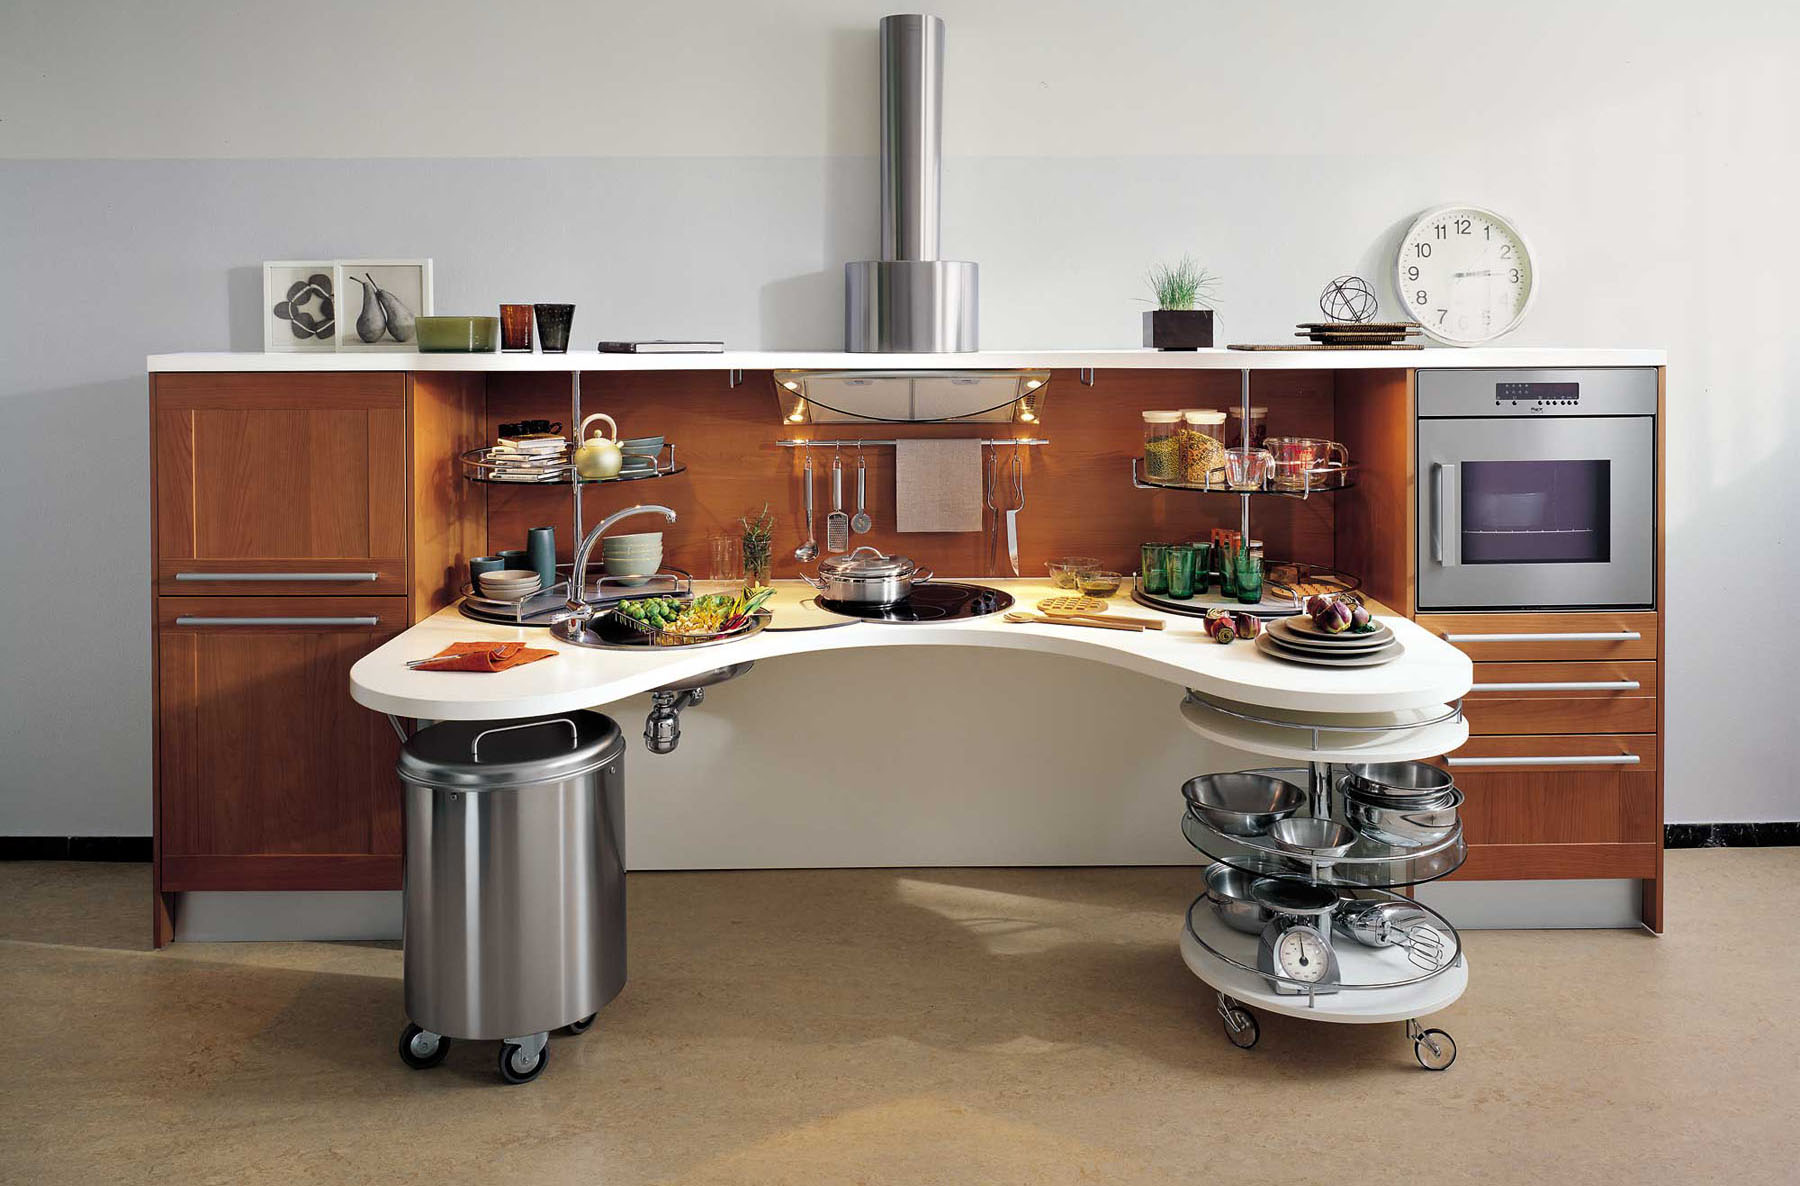 Ergonomic italian kitchen design suitable for wheelchair Dressing a kitchen